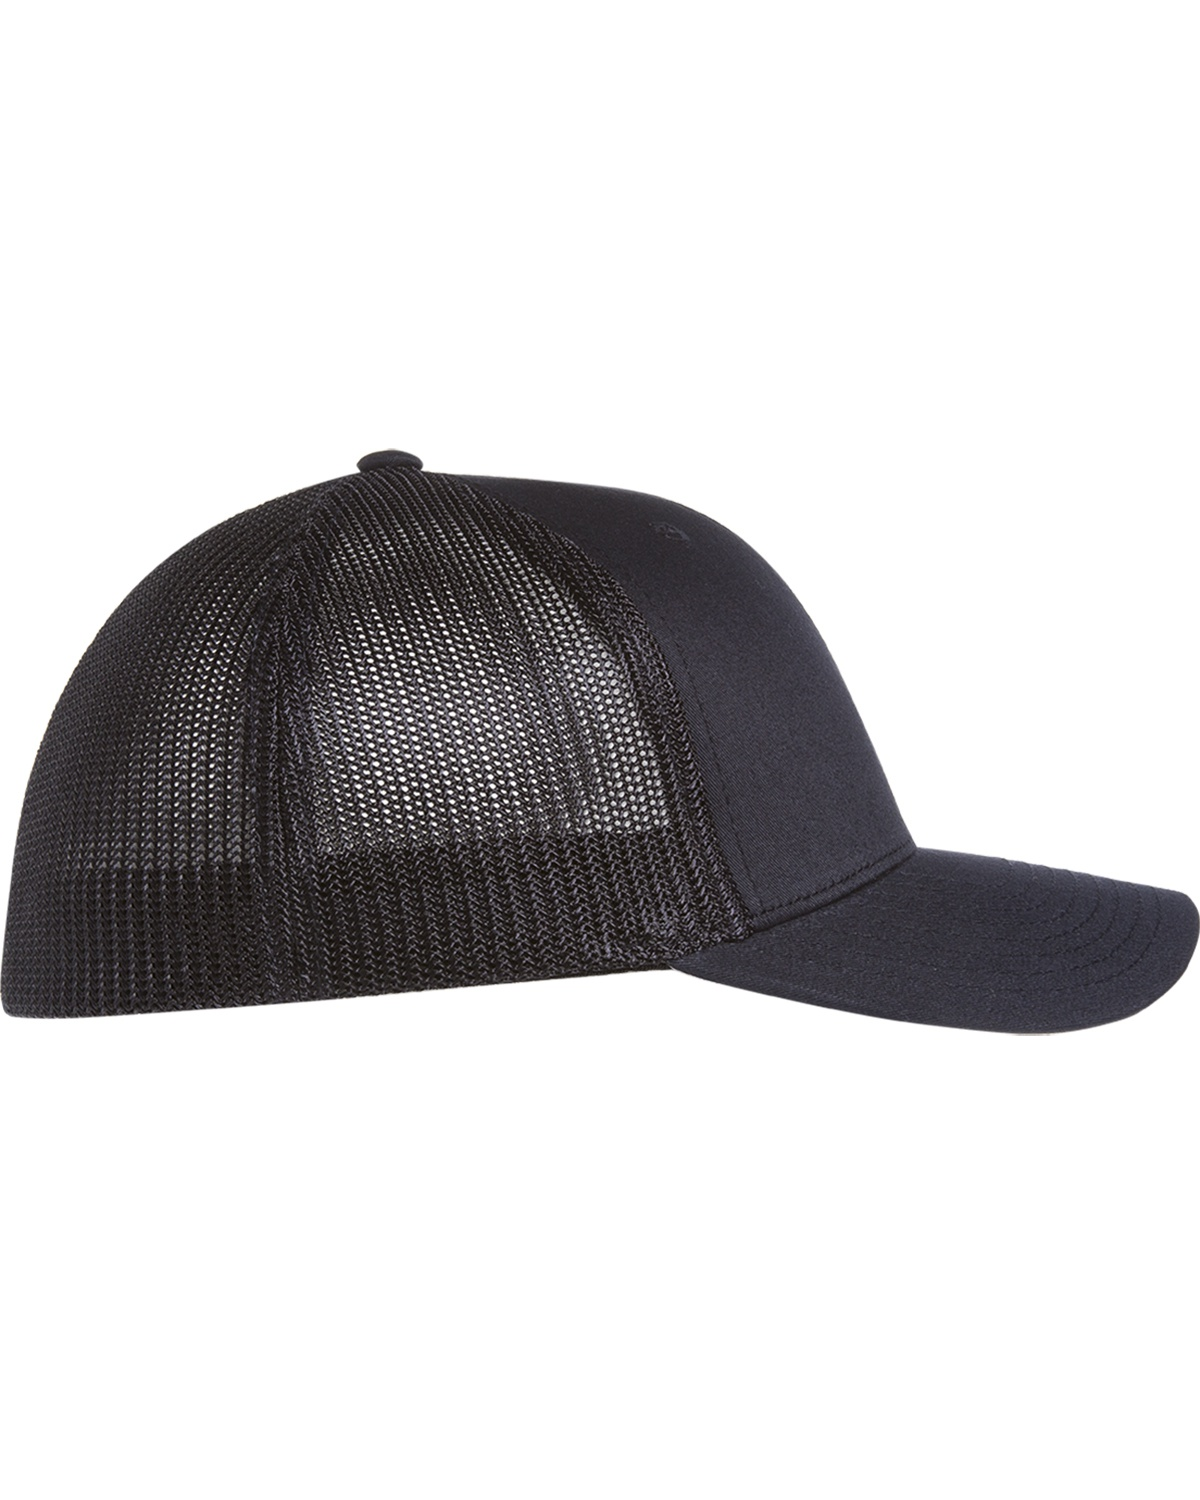 'Flexfit 6511 Adult 6-Panel Trucker Cap'